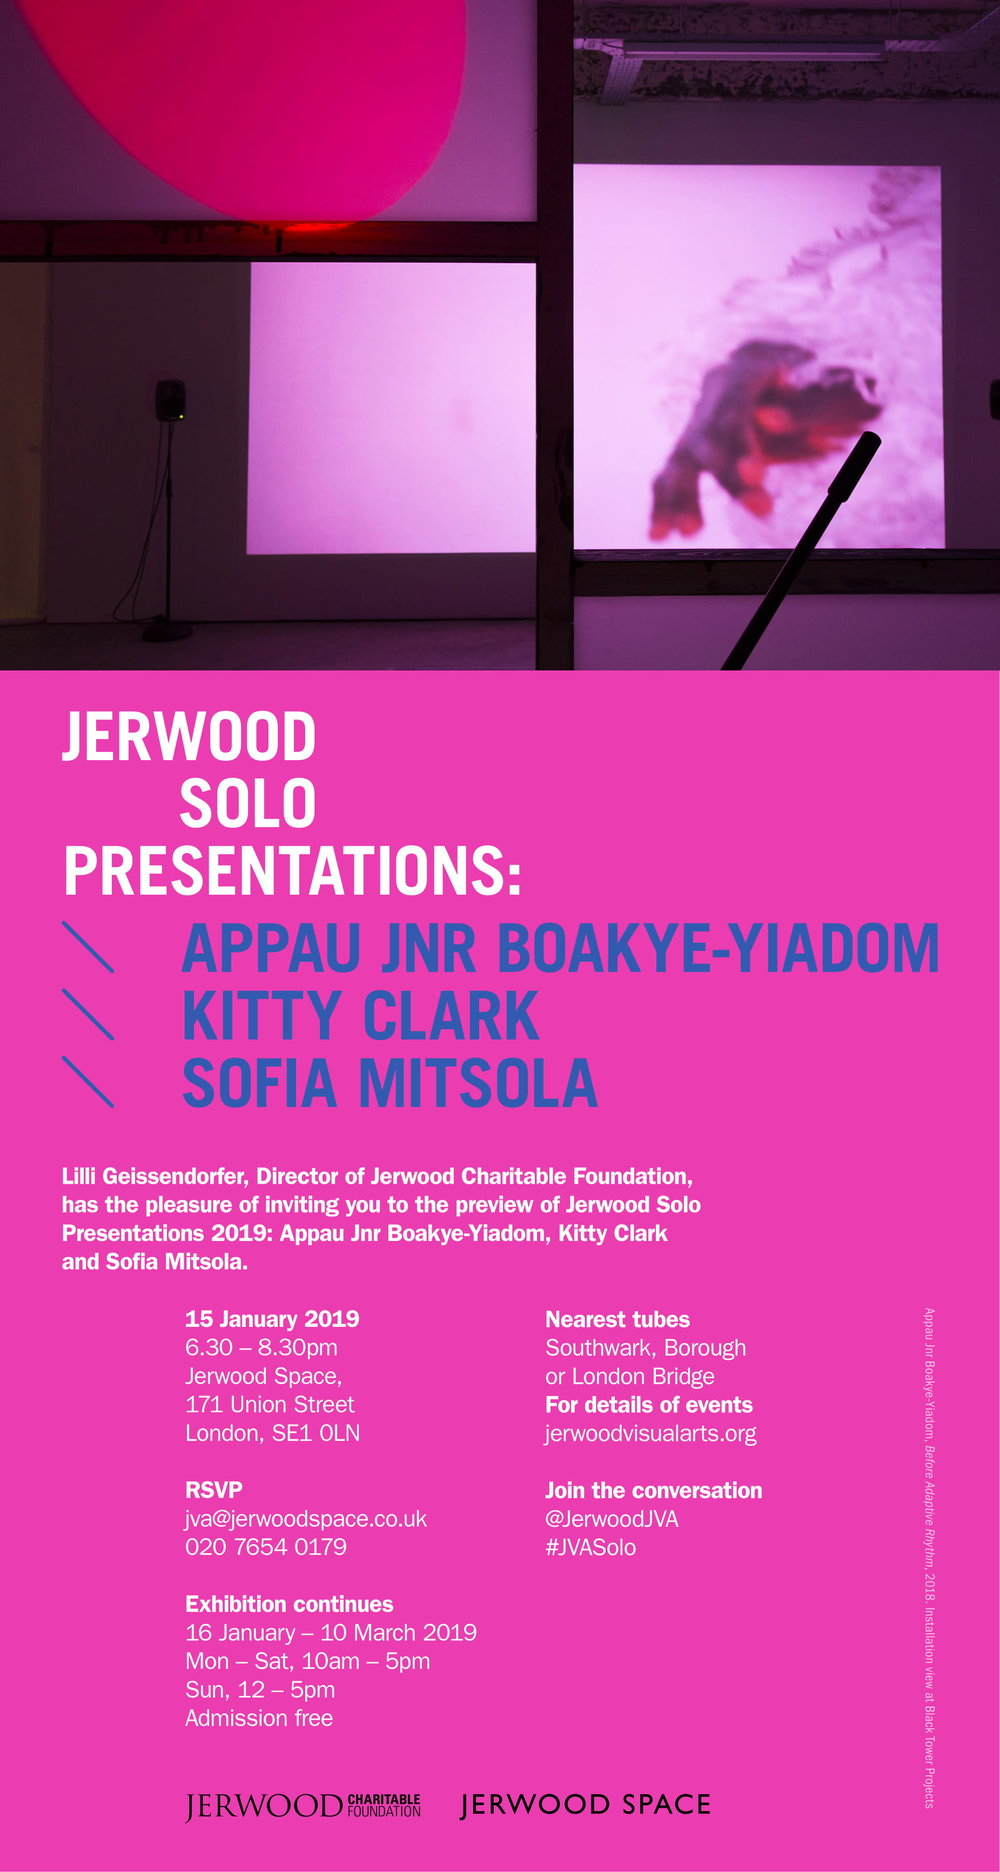 Jerwood SoloPresentations 2019 e-invitation.jpg